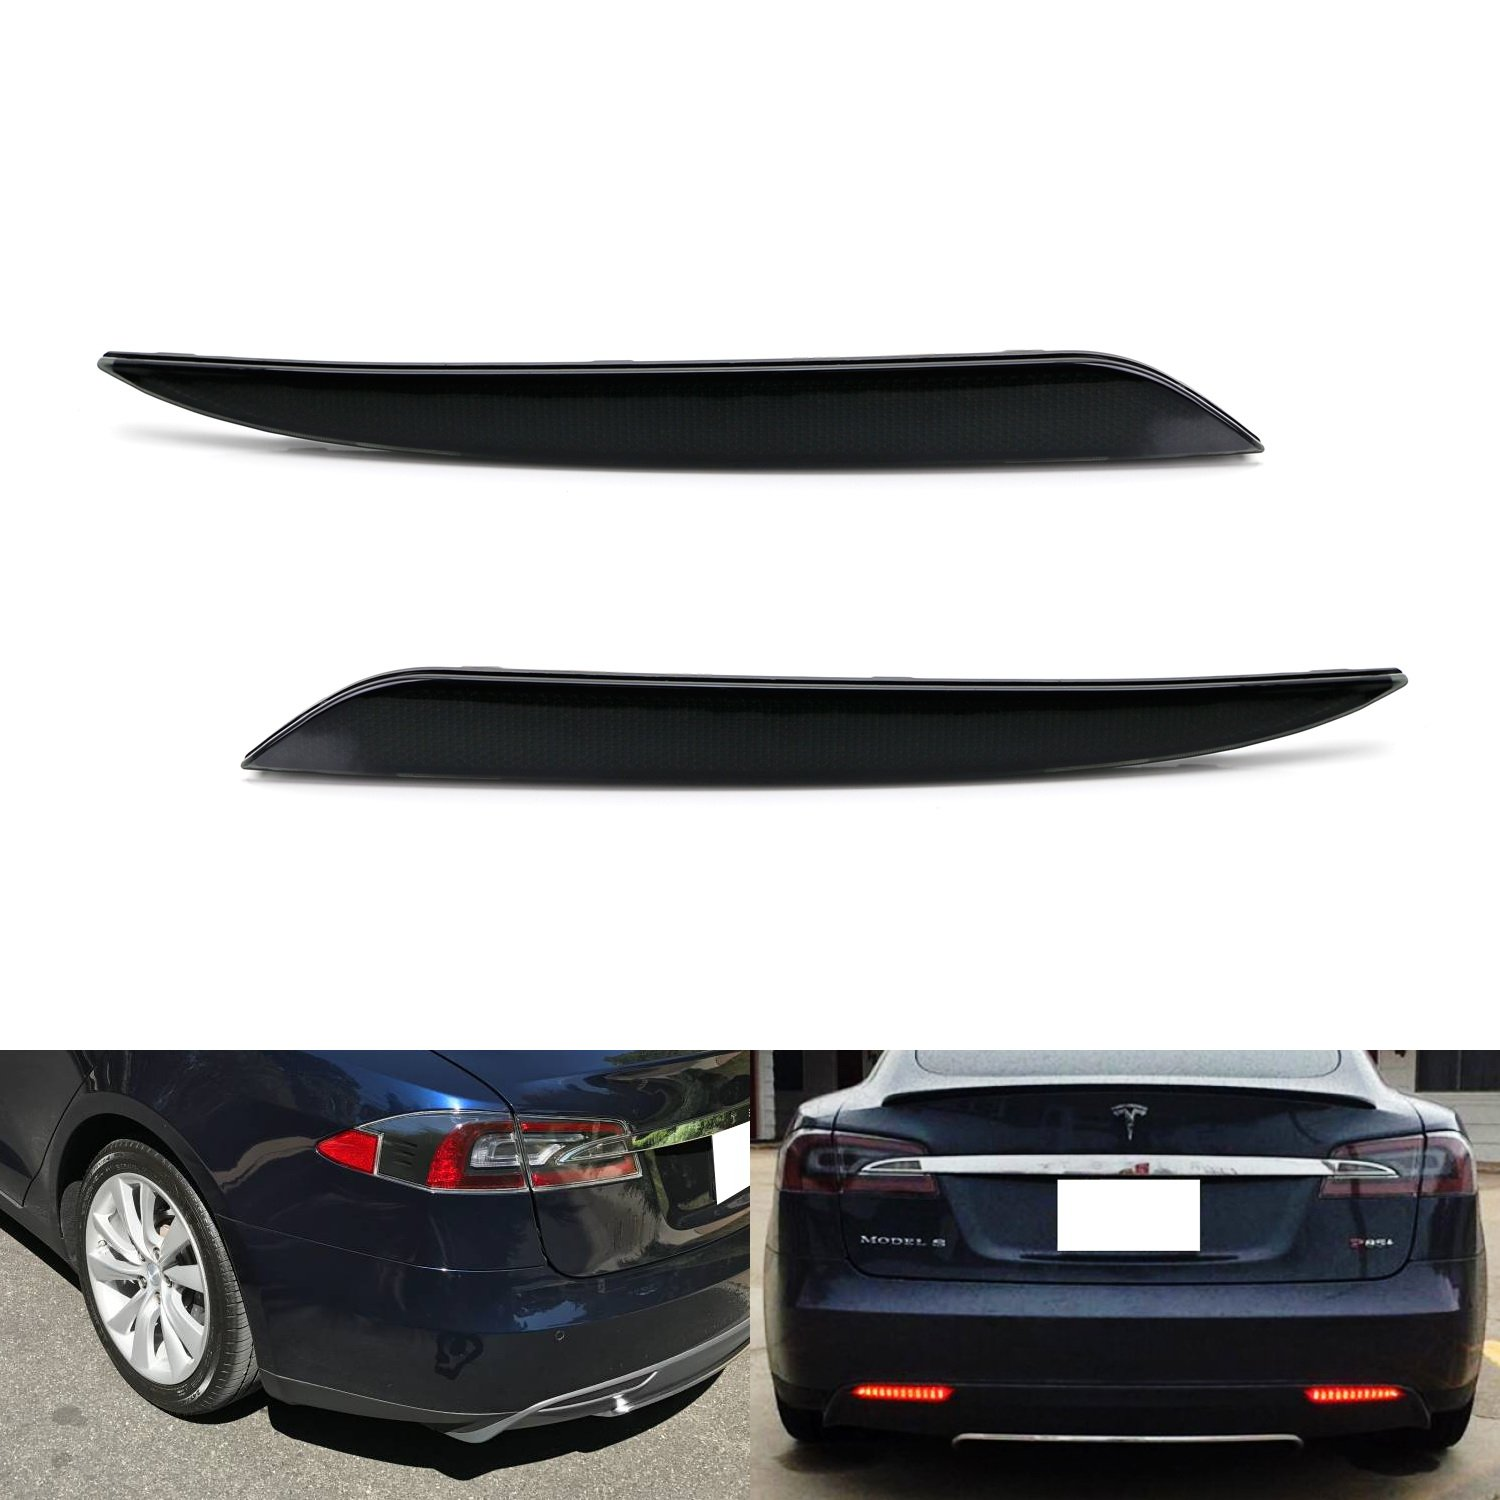 iJDMTOY Smoked Lens 24-SMD LED Bumper Reflector Lights For 12-up Tesla Model S, Function as Tail, Brake & Rear Fog Lamps